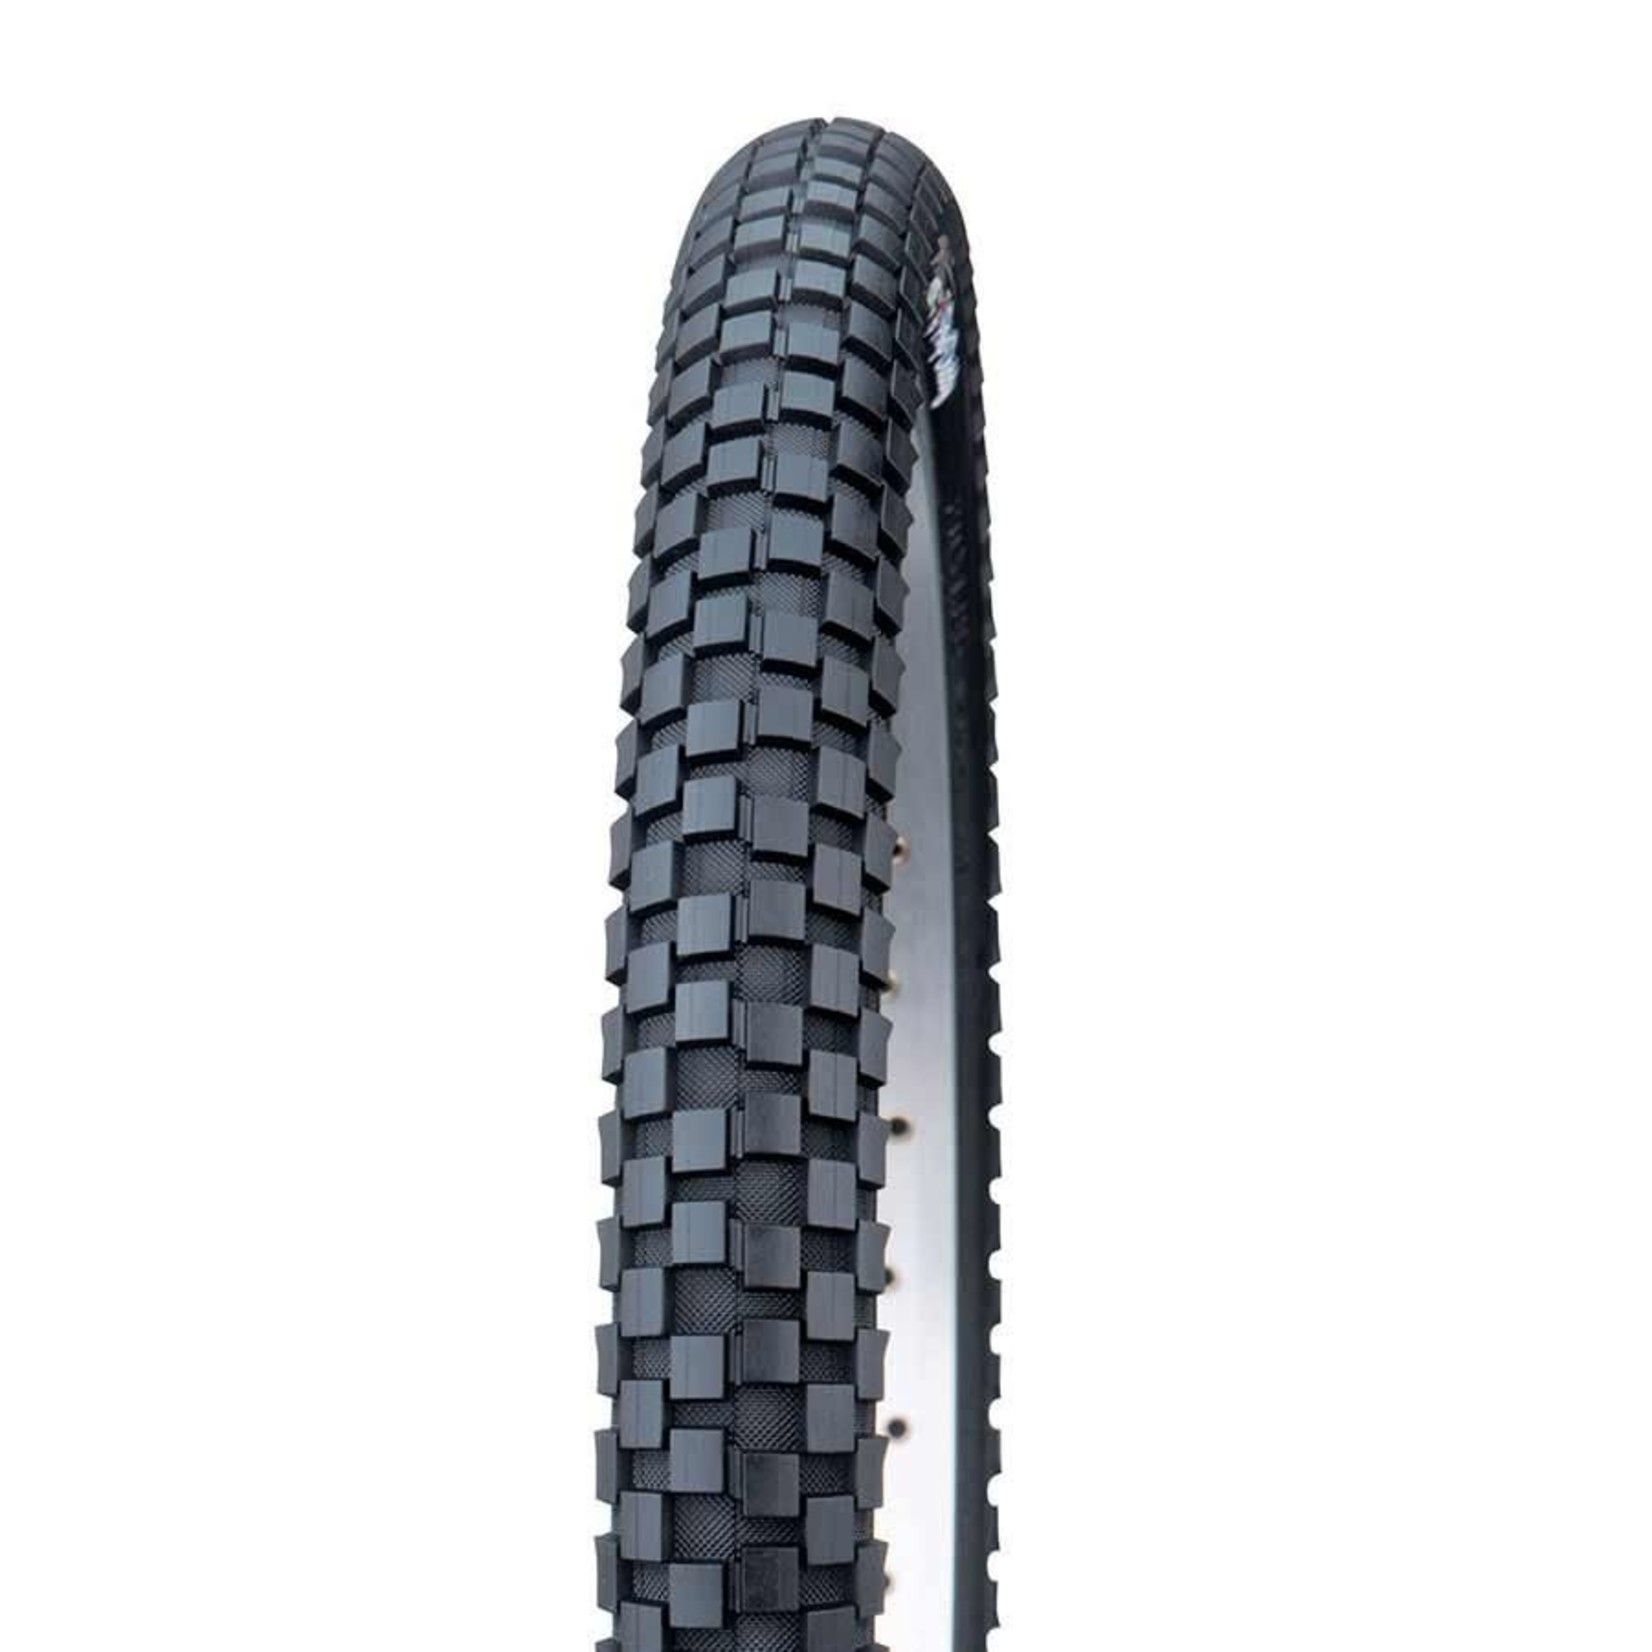 Maxxis Holy Roller, 20x2.20, Wire, Dual, Clincher, 60TPI, 60PSI, Black